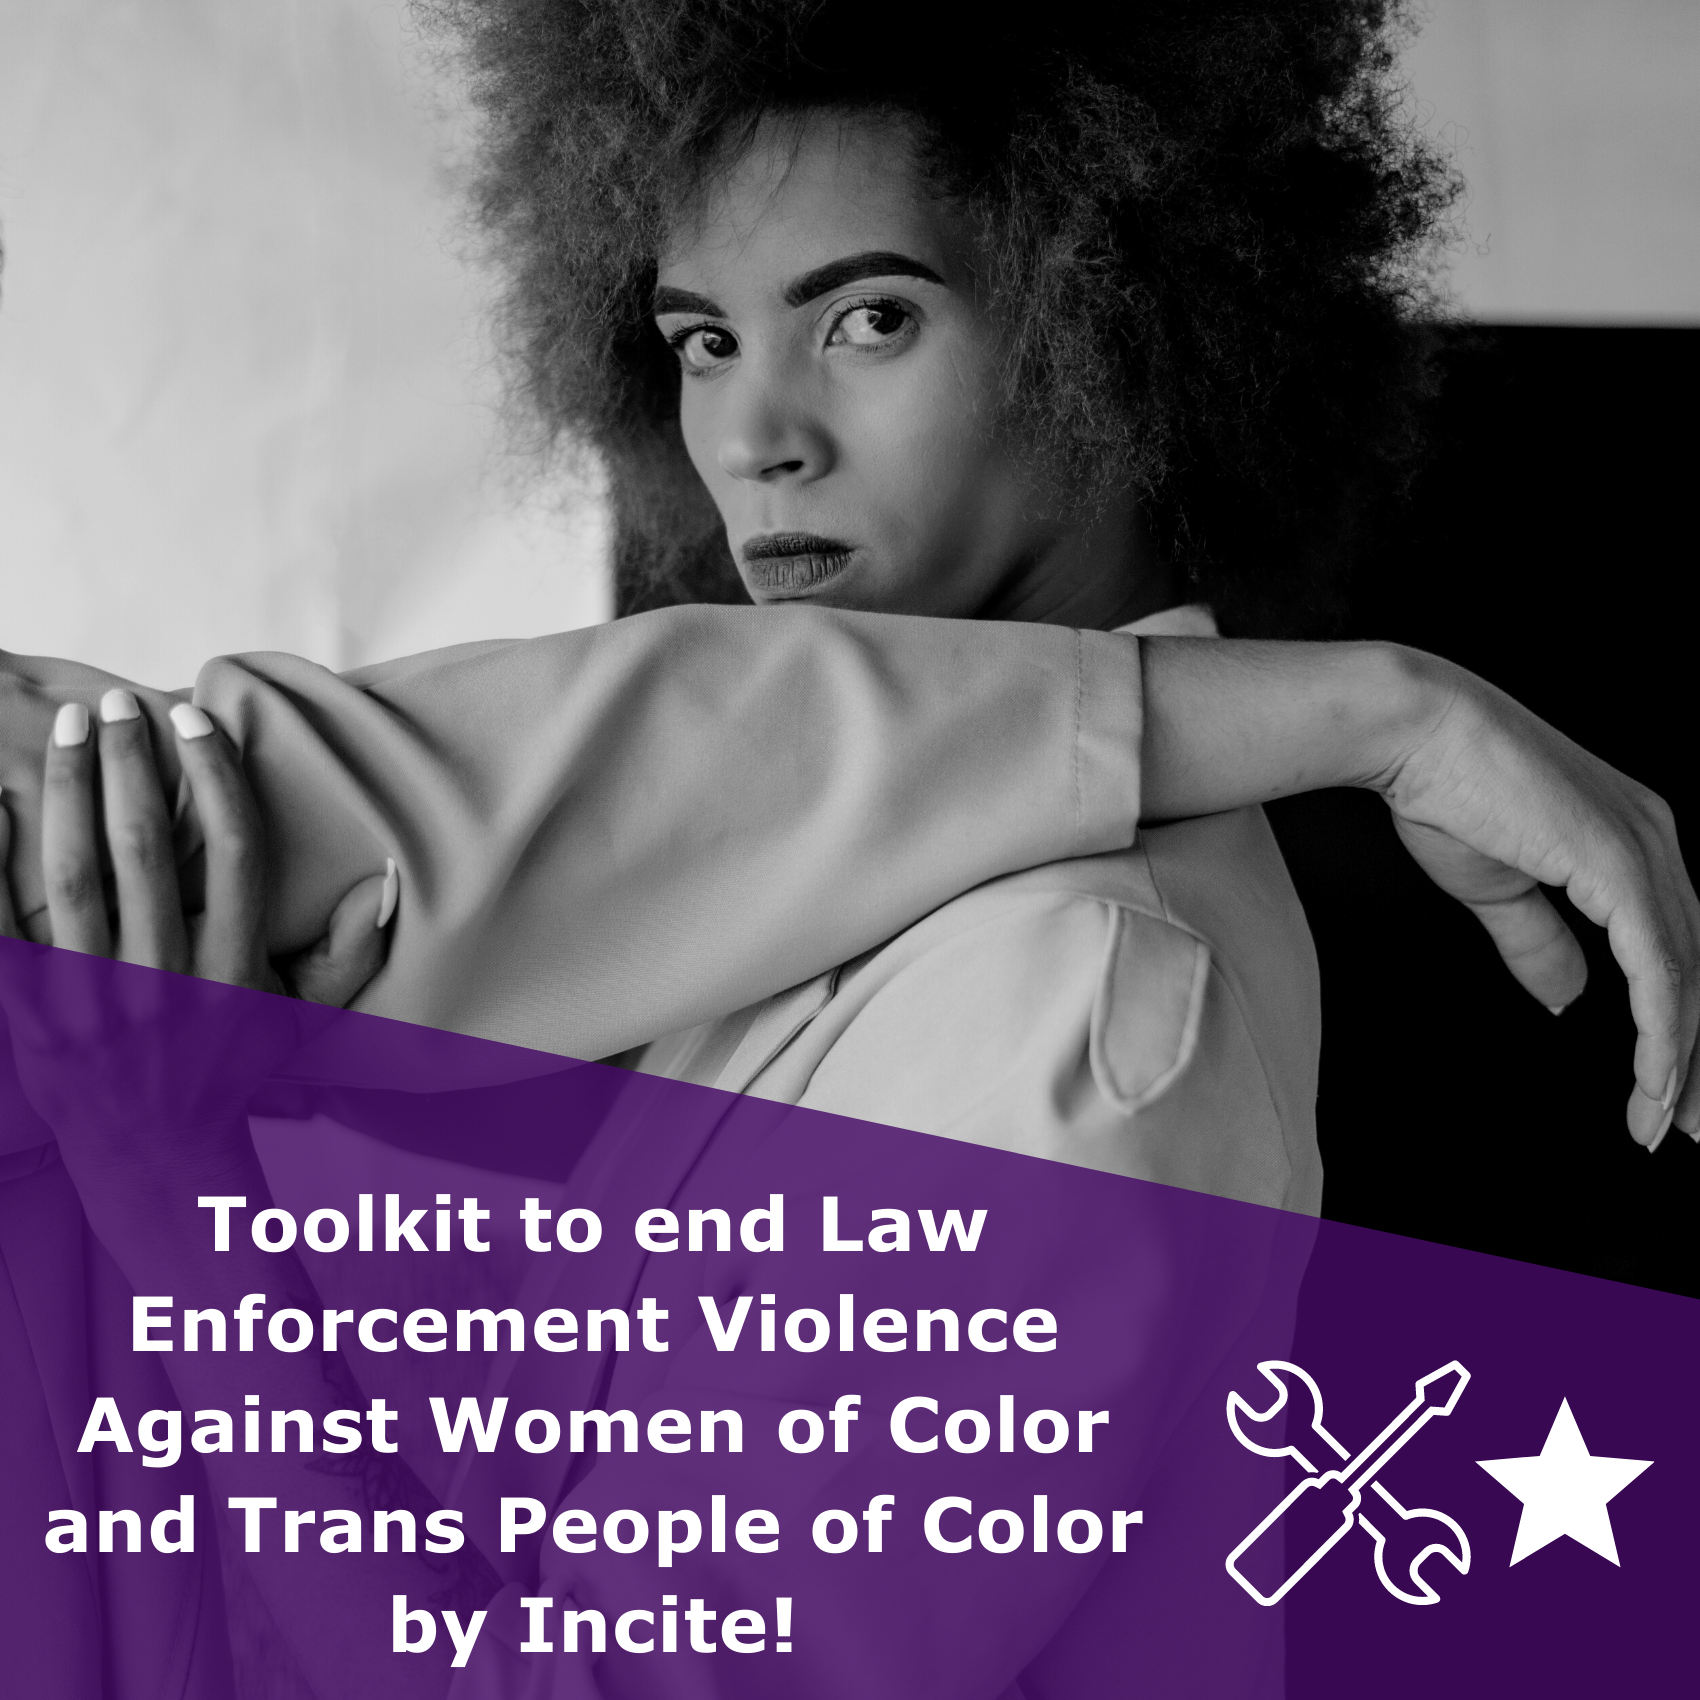 Communities Engaged in Resisting Violence toolkit, rated 1 star